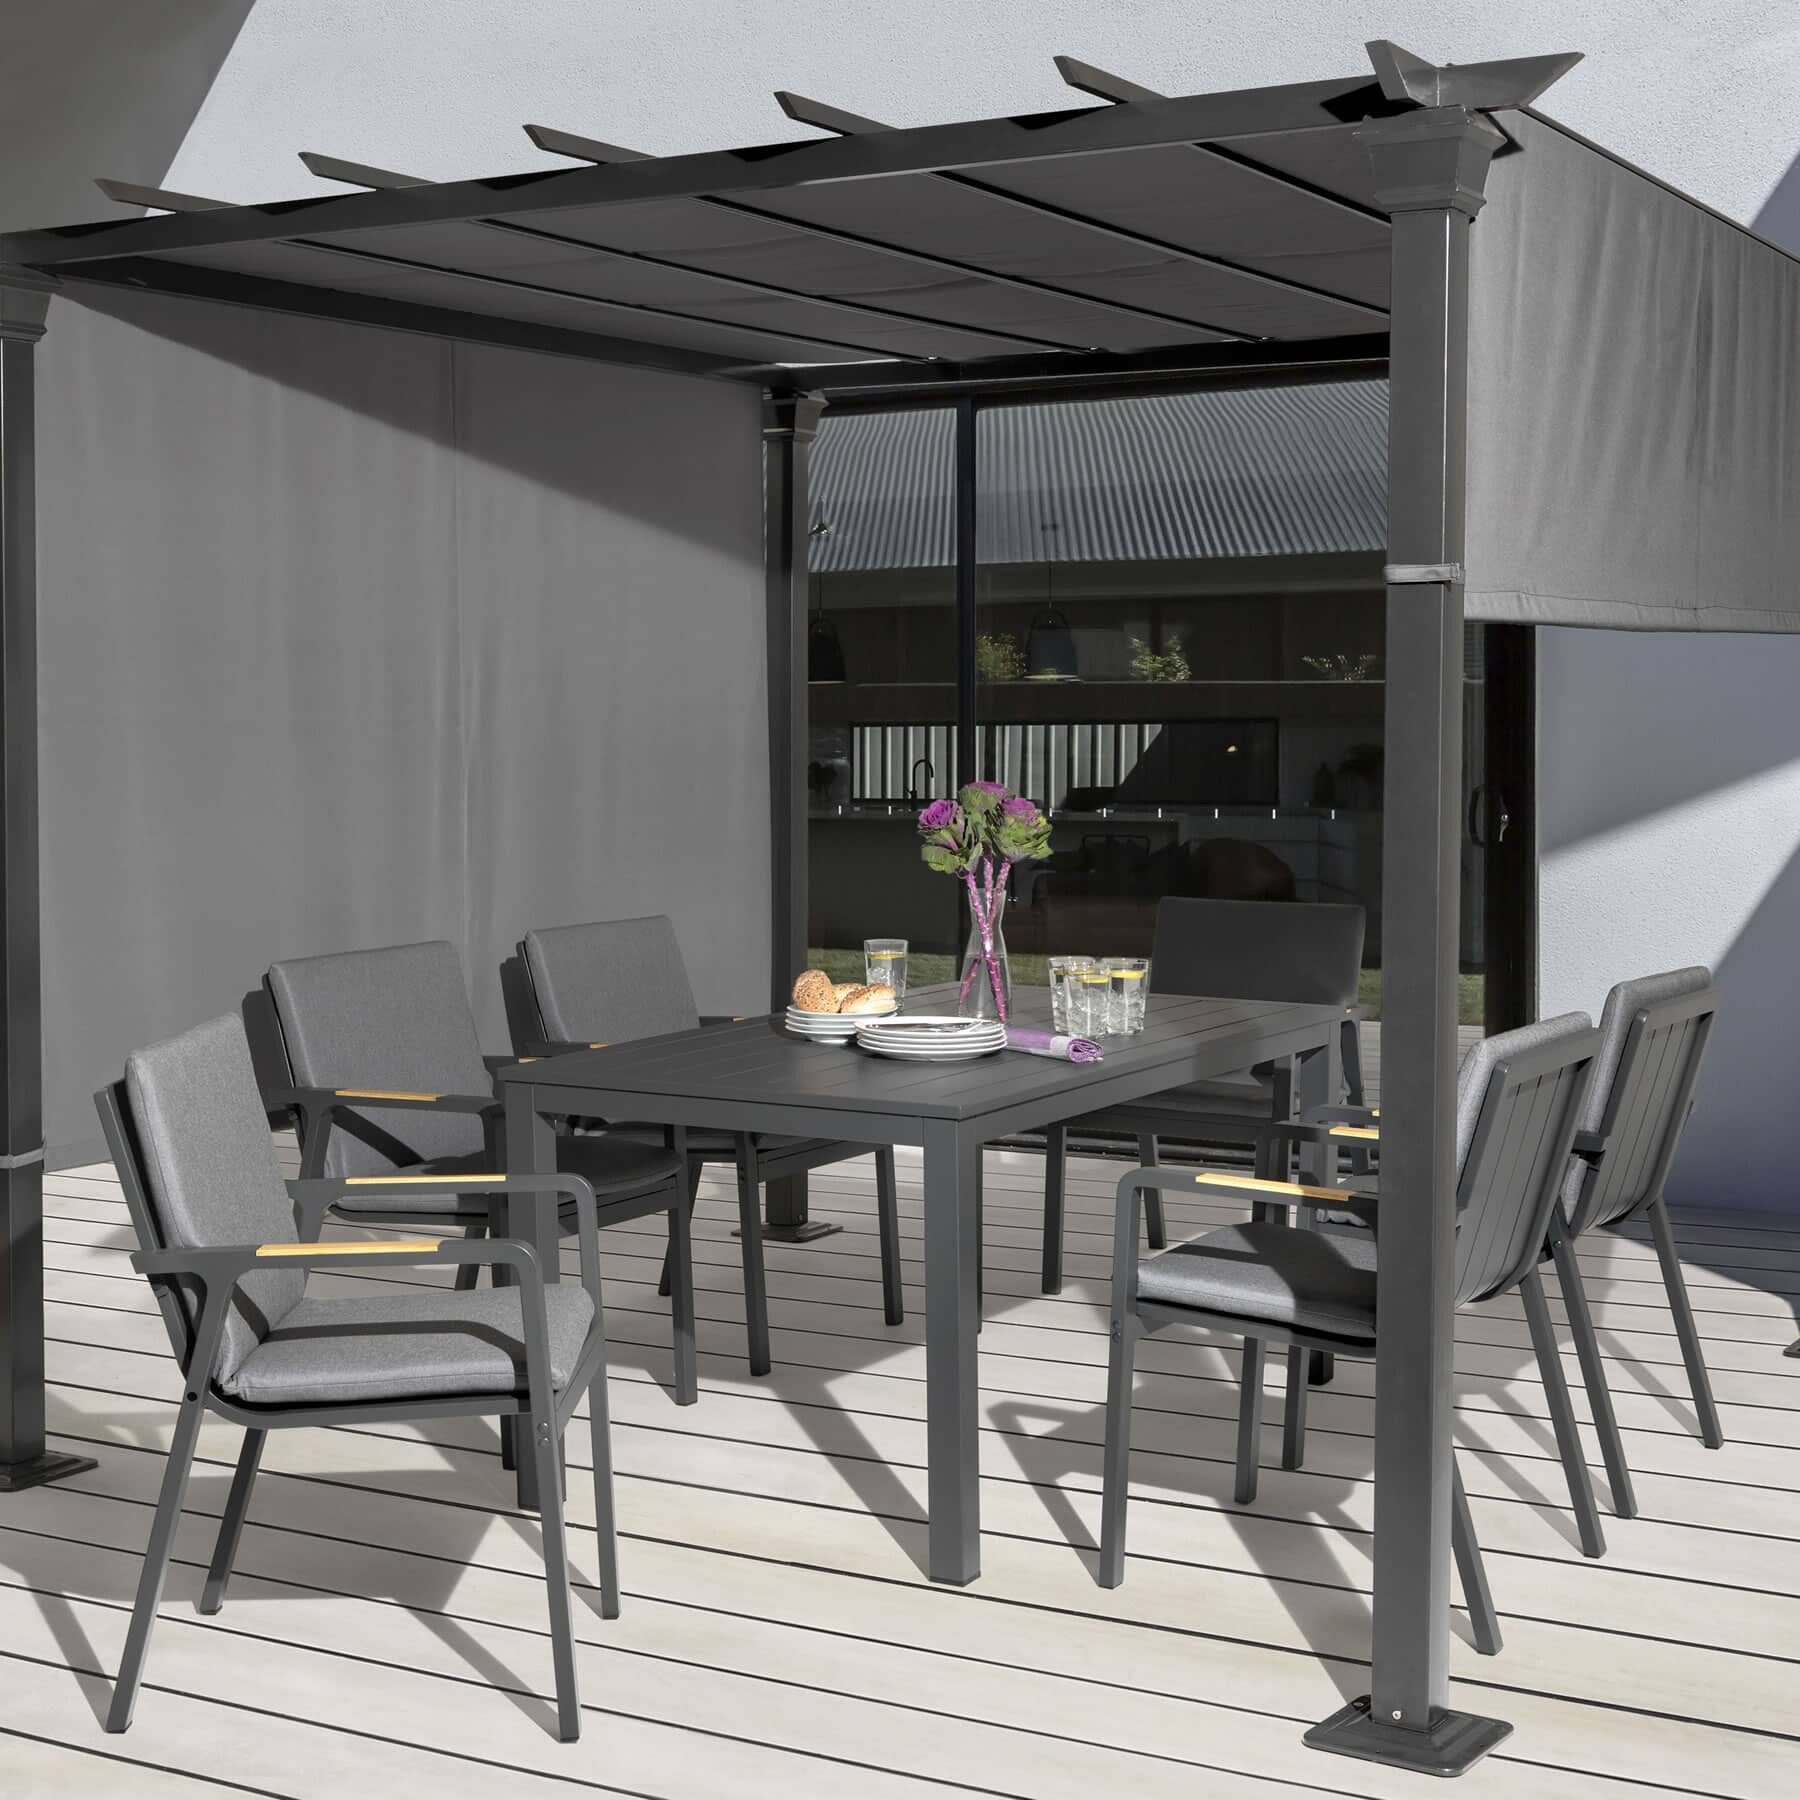 Kettler Paros 8 Seater Garden Dining Table And Chairs Set Grey: Kettler Paros 6 Seater Dining Set